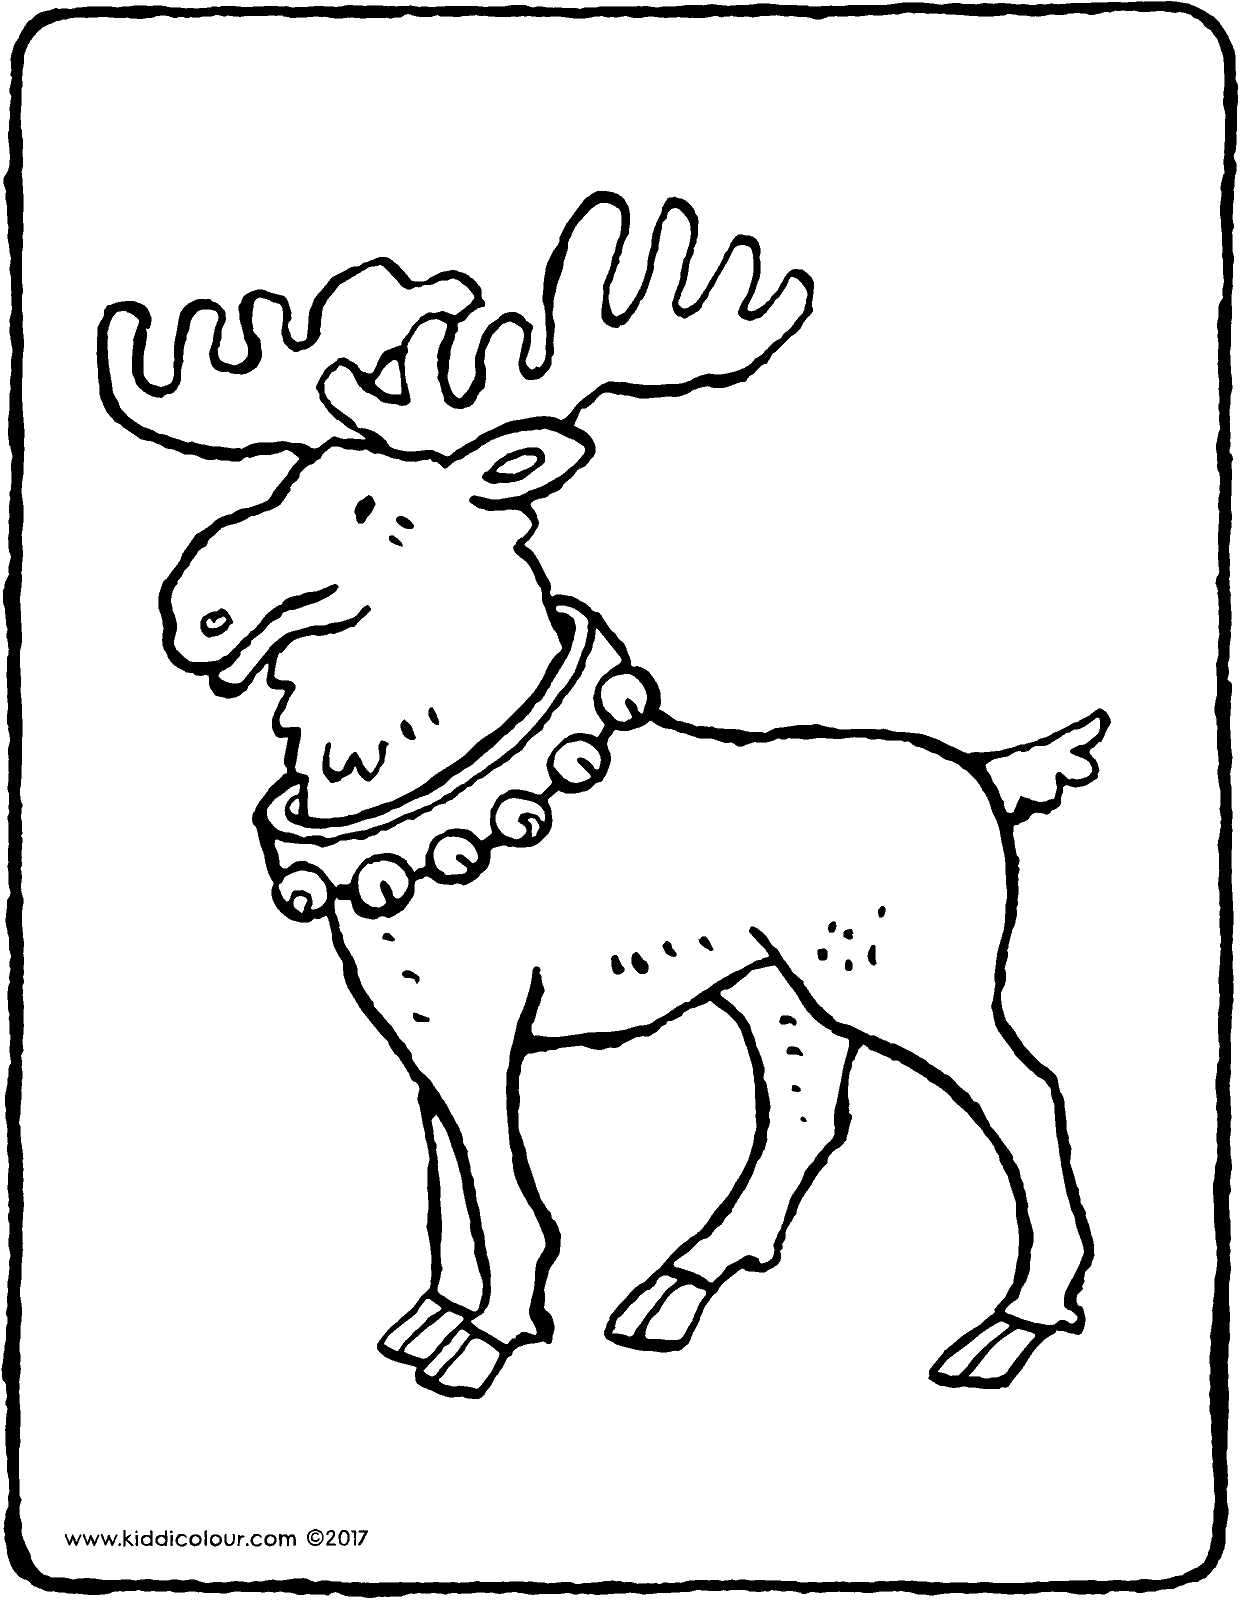 Father Christmas' reindeer colouring page page drawing picture 01V